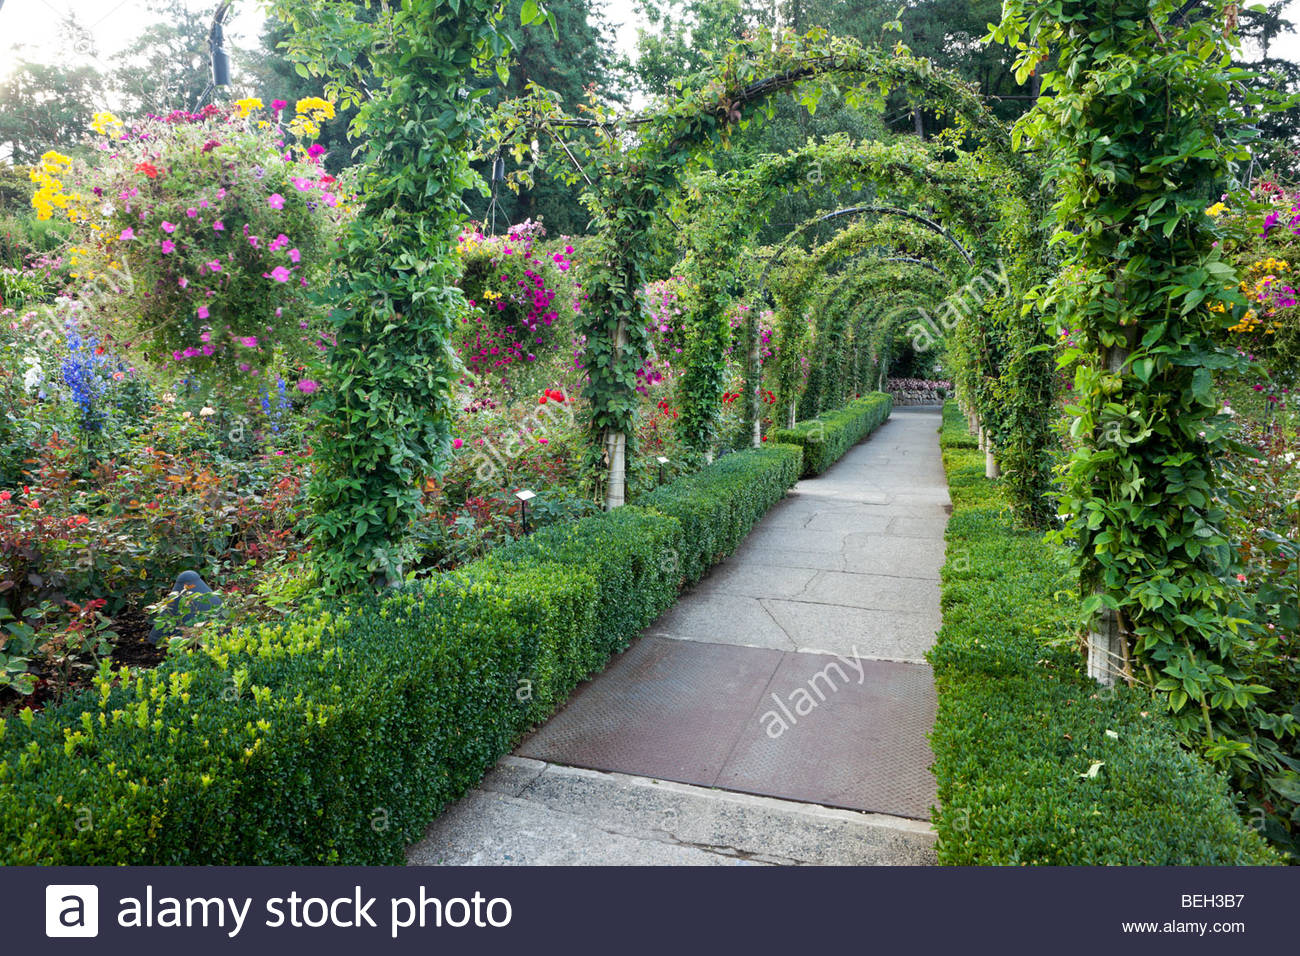 Hanging Flower Baskets Along Rose Garden Pathway At The Butchart Gardens,  Brentwood Bay, B.C